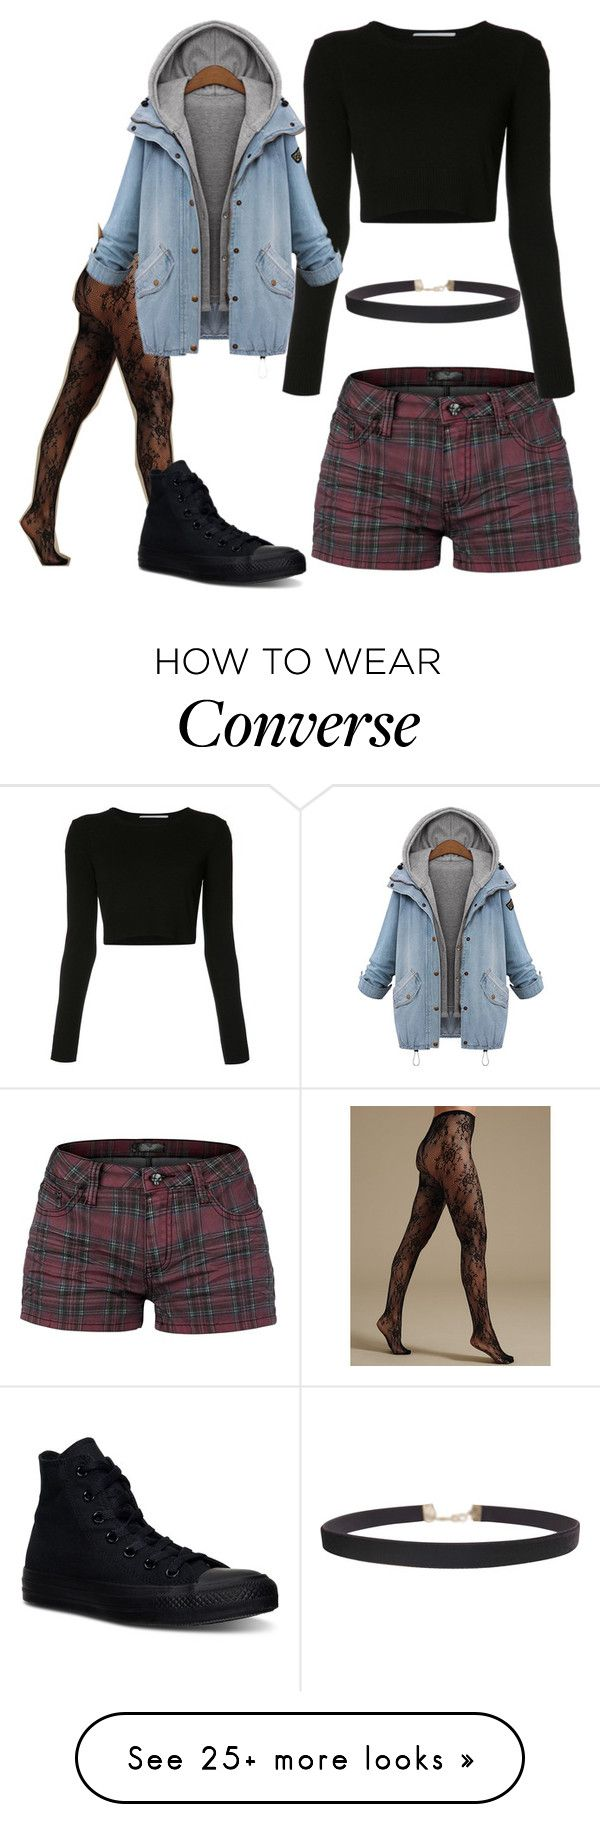 """Untitled #1642"" by laurenwolfchild on Polyvore featuring Rosetta Getty, Converse and Humble Chic"